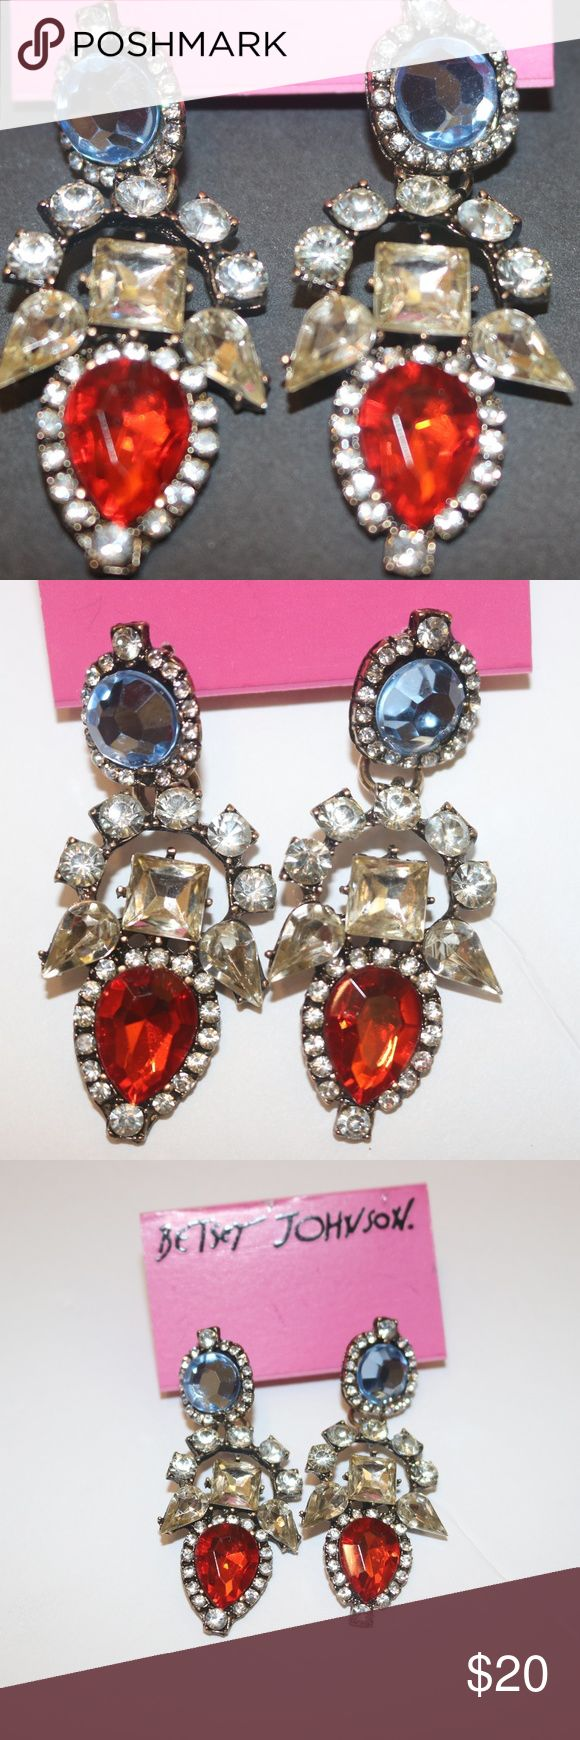 New Betsey Johnson Earrings Multicolor Nwt